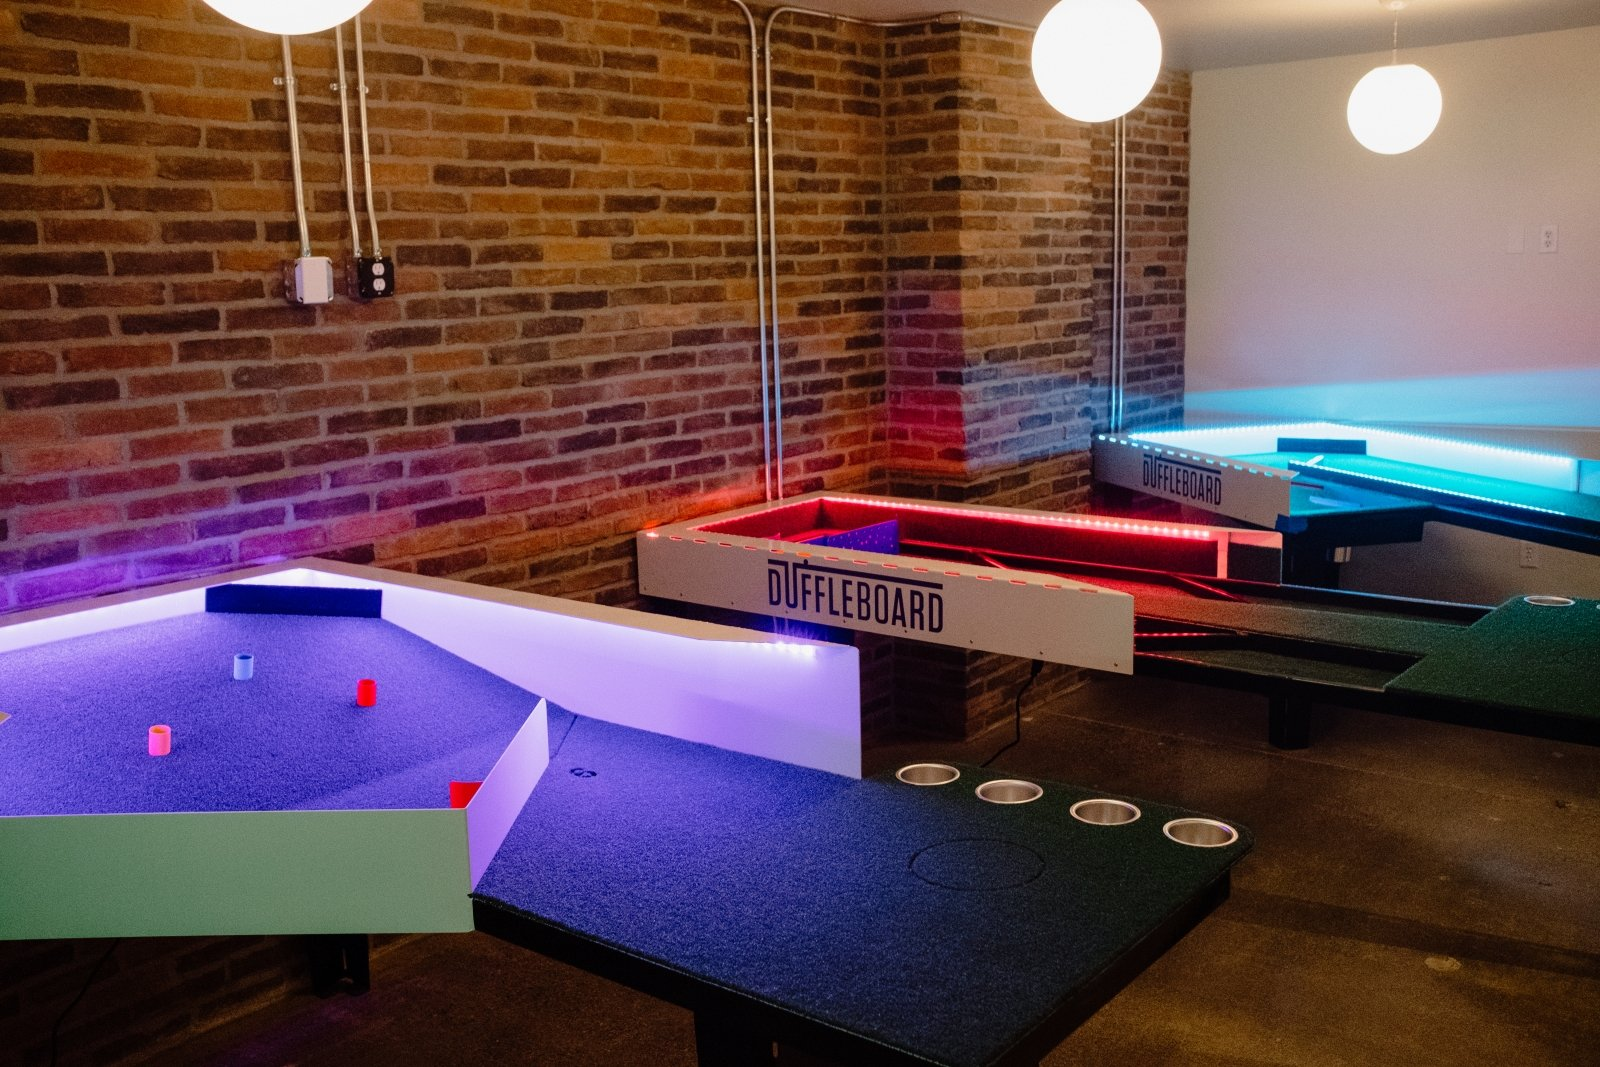 Duffleboard, a proprietary Flatstick Pub game that's part golf and part shuffleboard